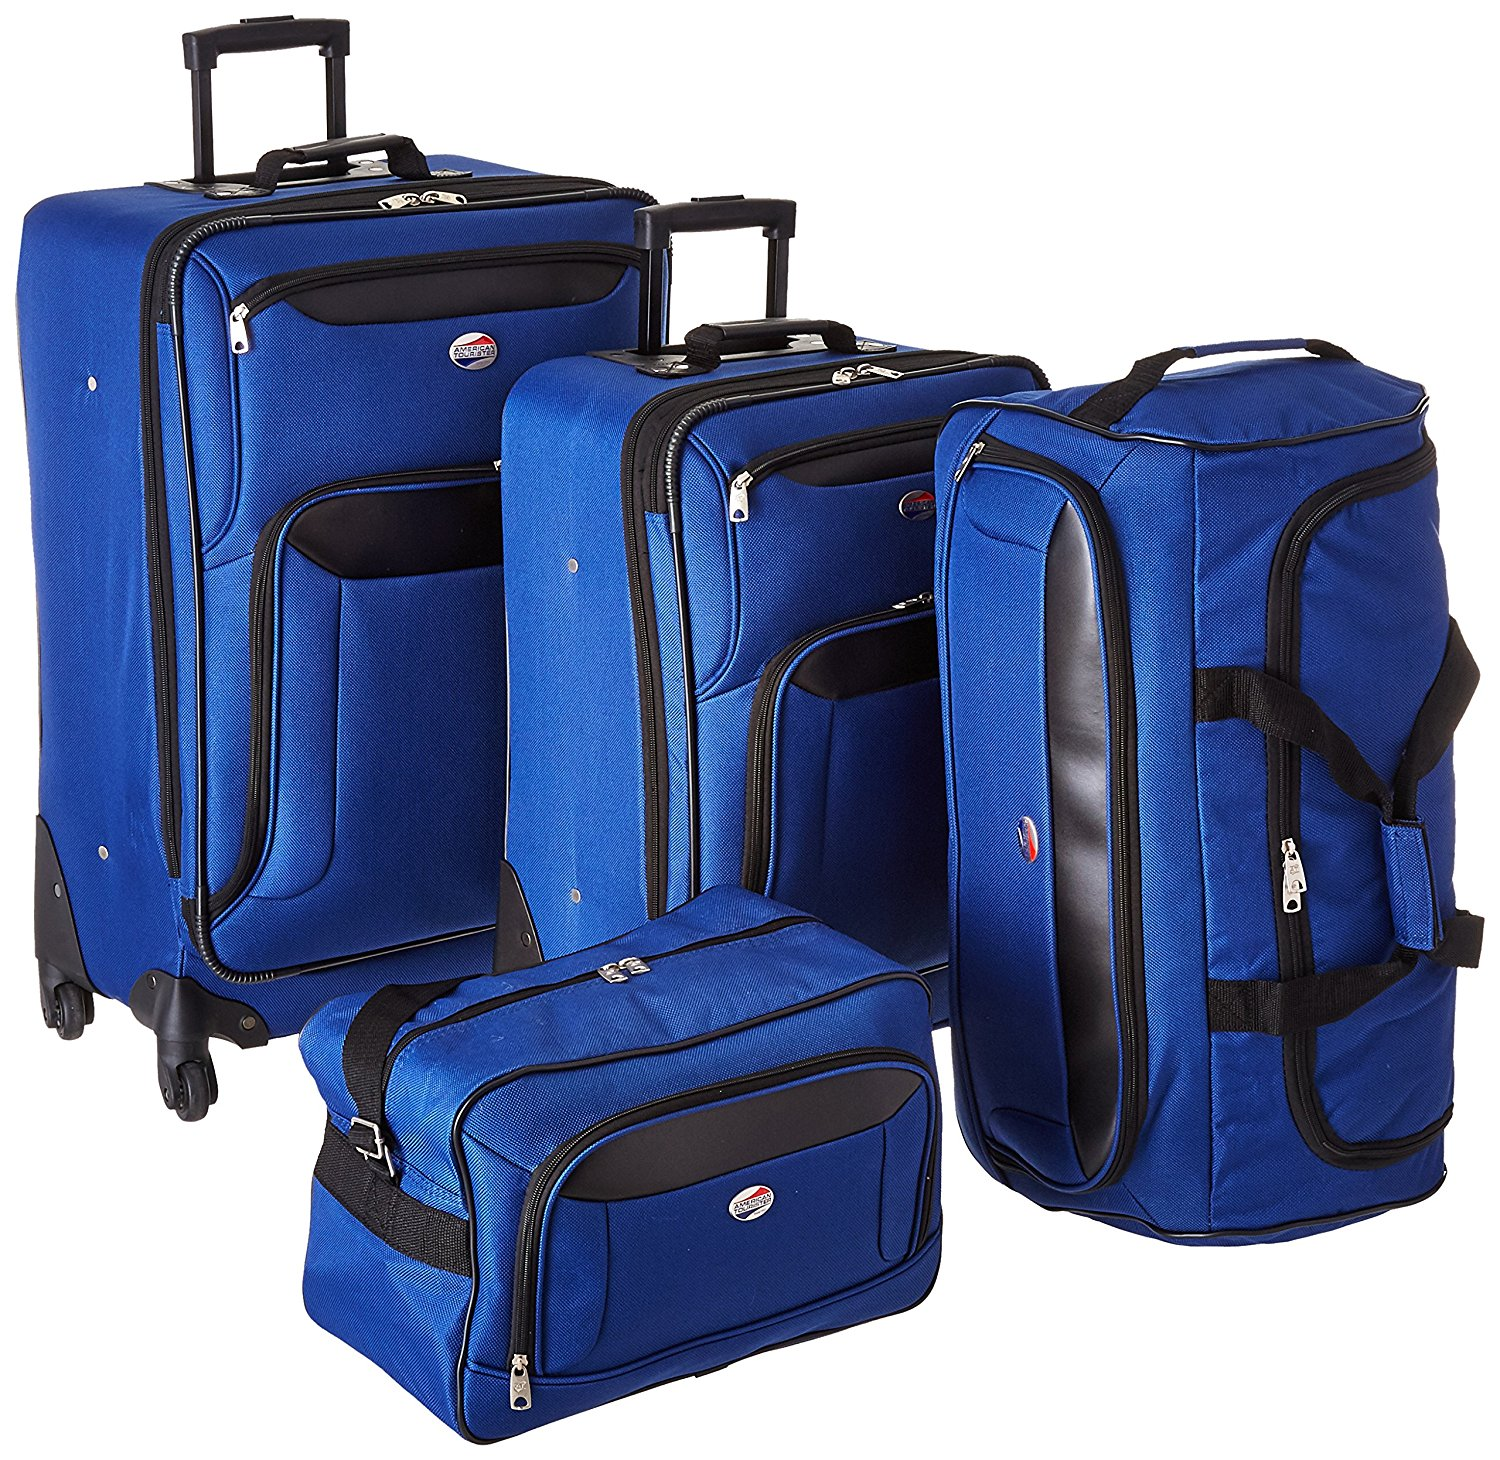 9f657cae01a3 Get Quotations · American Tourister Brookfield 4 Piece Set